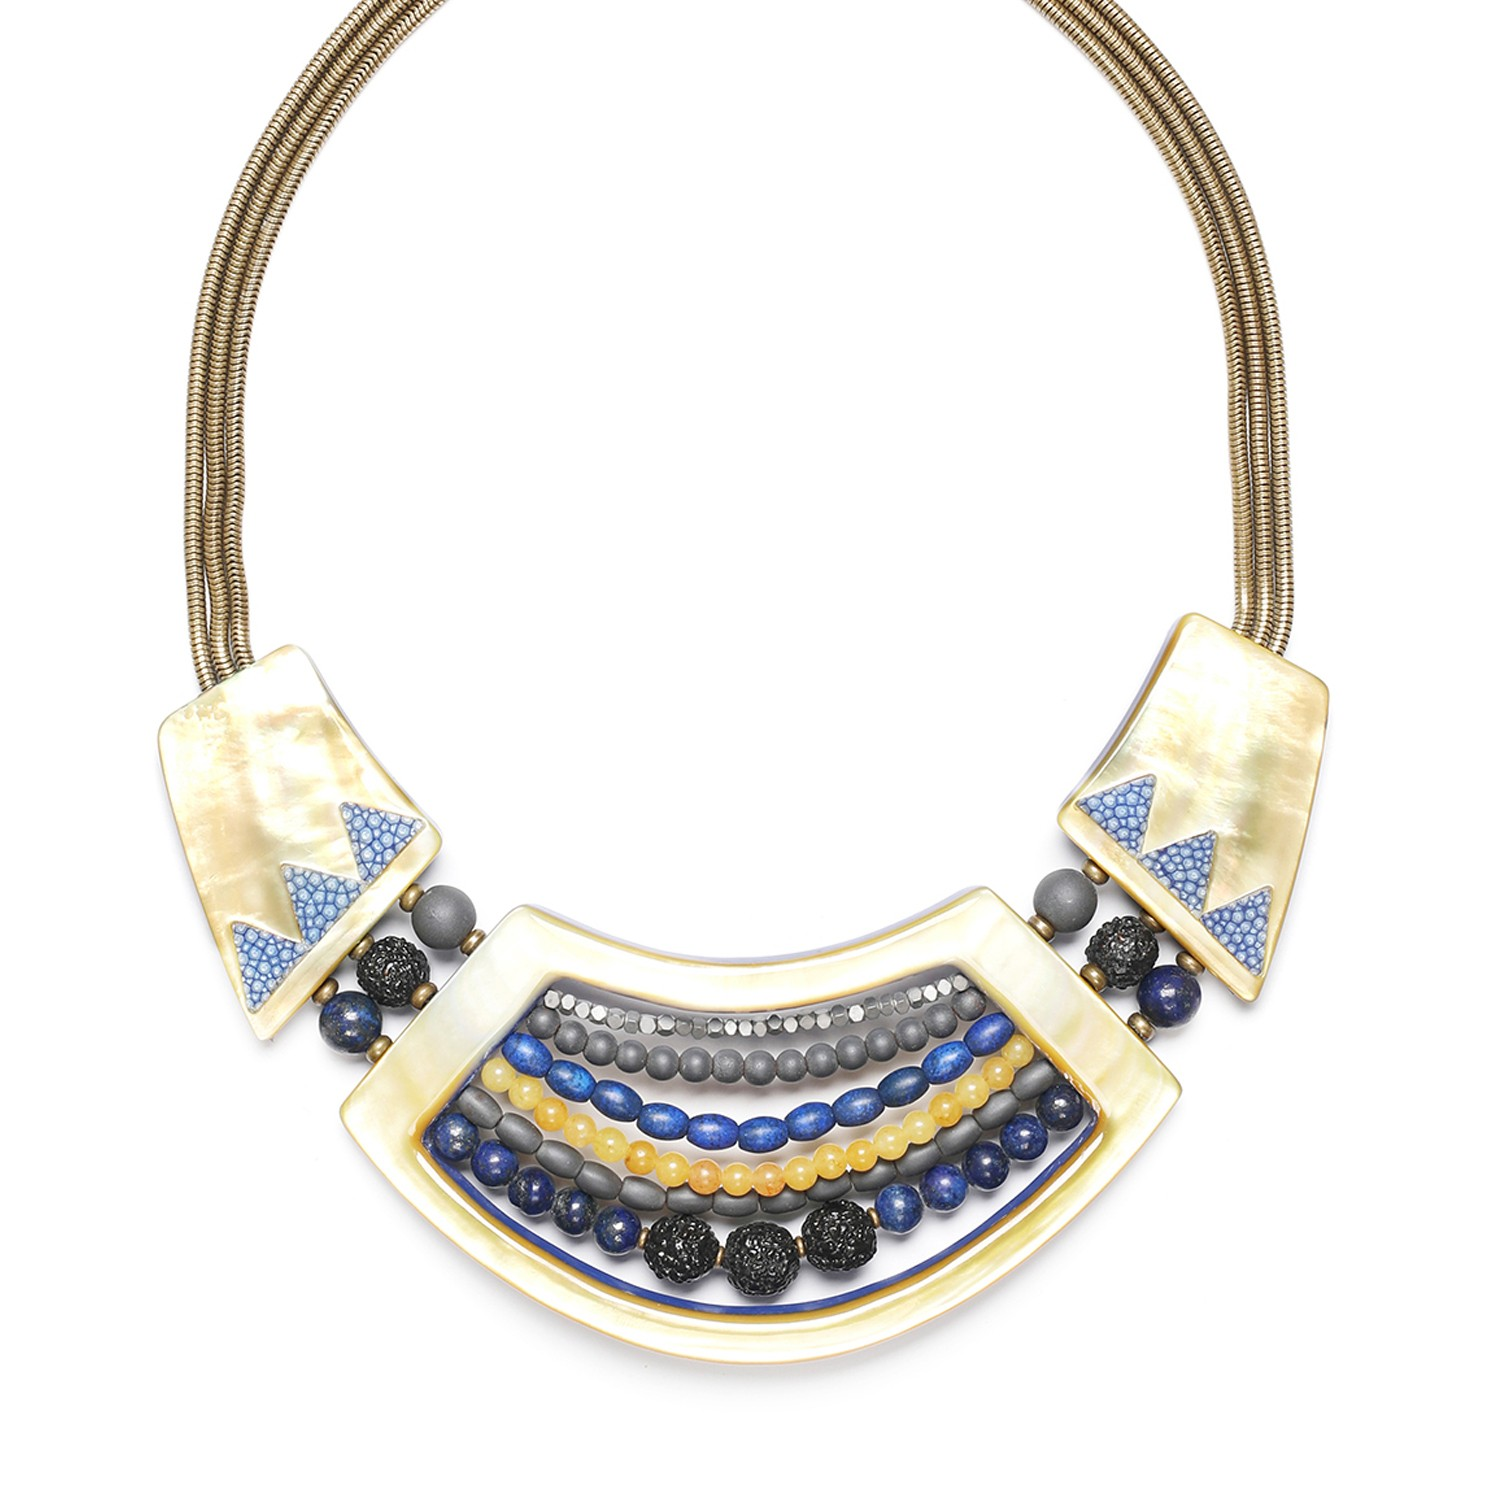 BLUE TRIBE 3 elements necklace